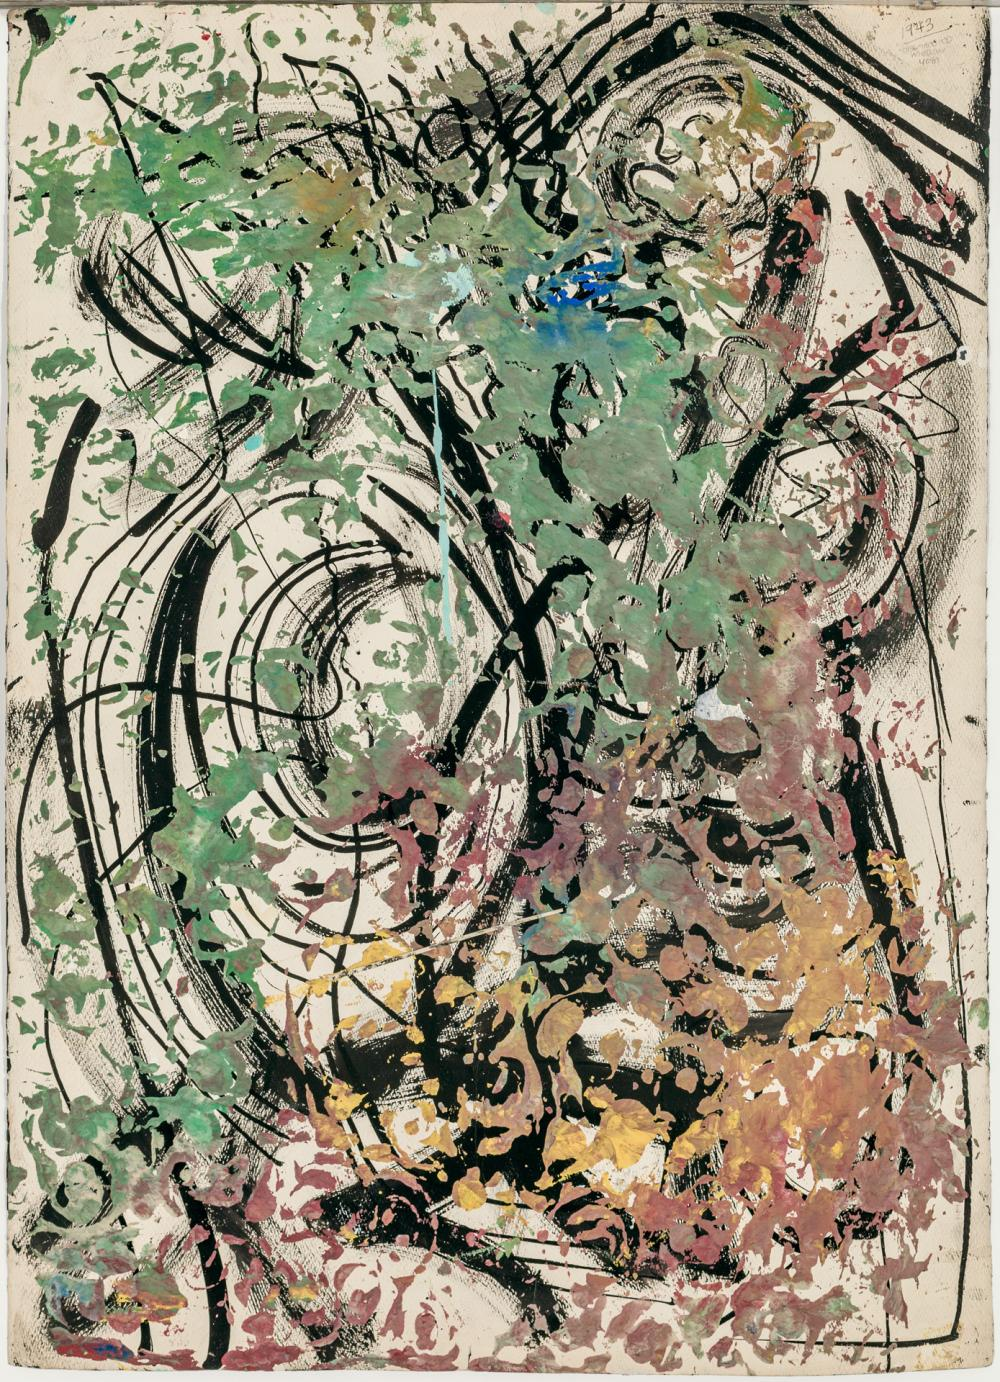 """GEROME KAMROWSKI, American (1914-2004), """"Disembodied Motion"""" (Double-sided), ink and gouache on paper, signed lower left """"Kamrowski,..."""